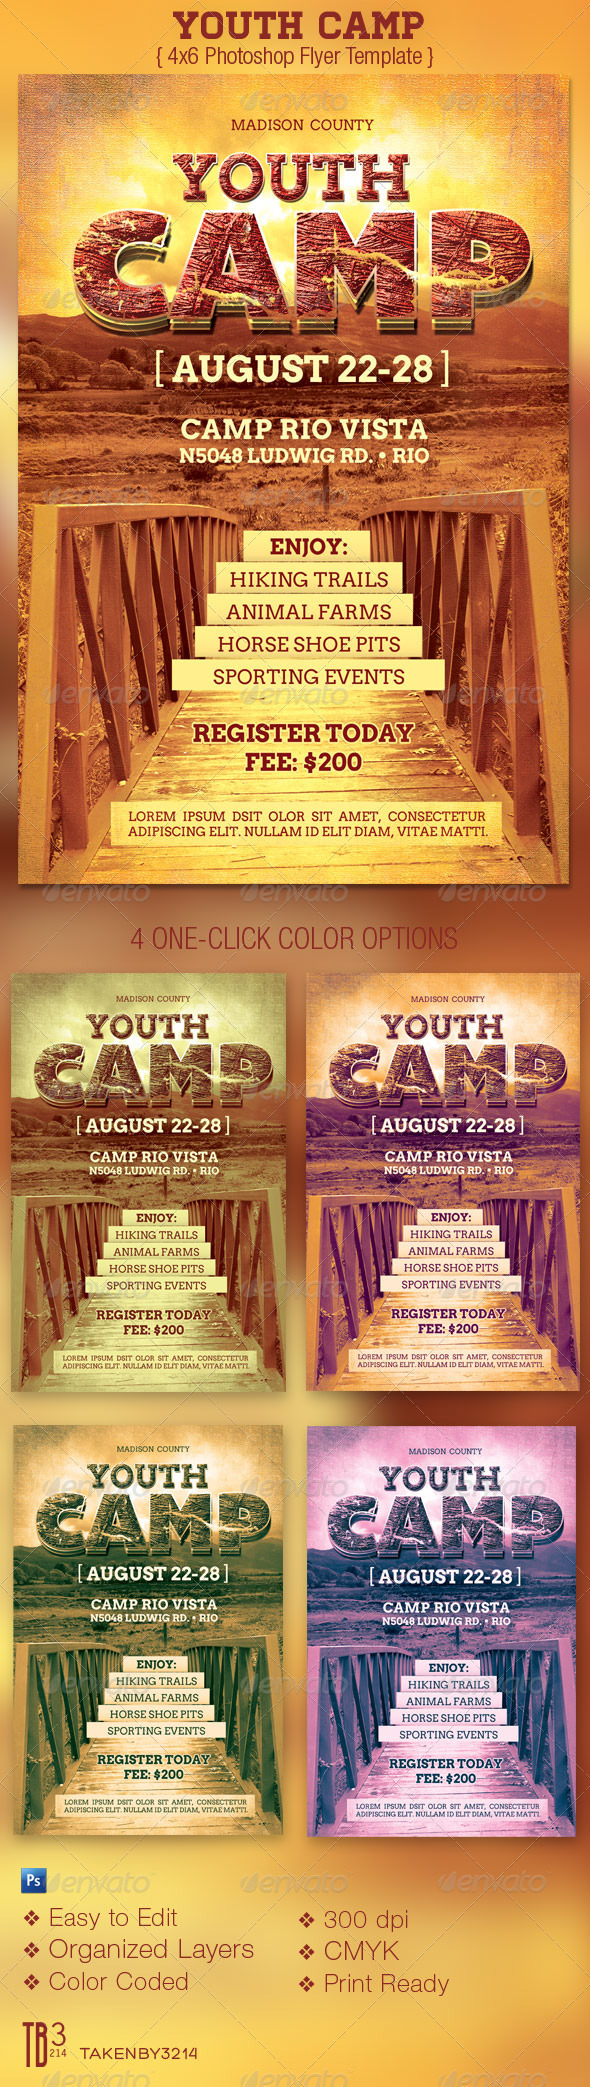 Youth Camp Flyer - Church Flyers